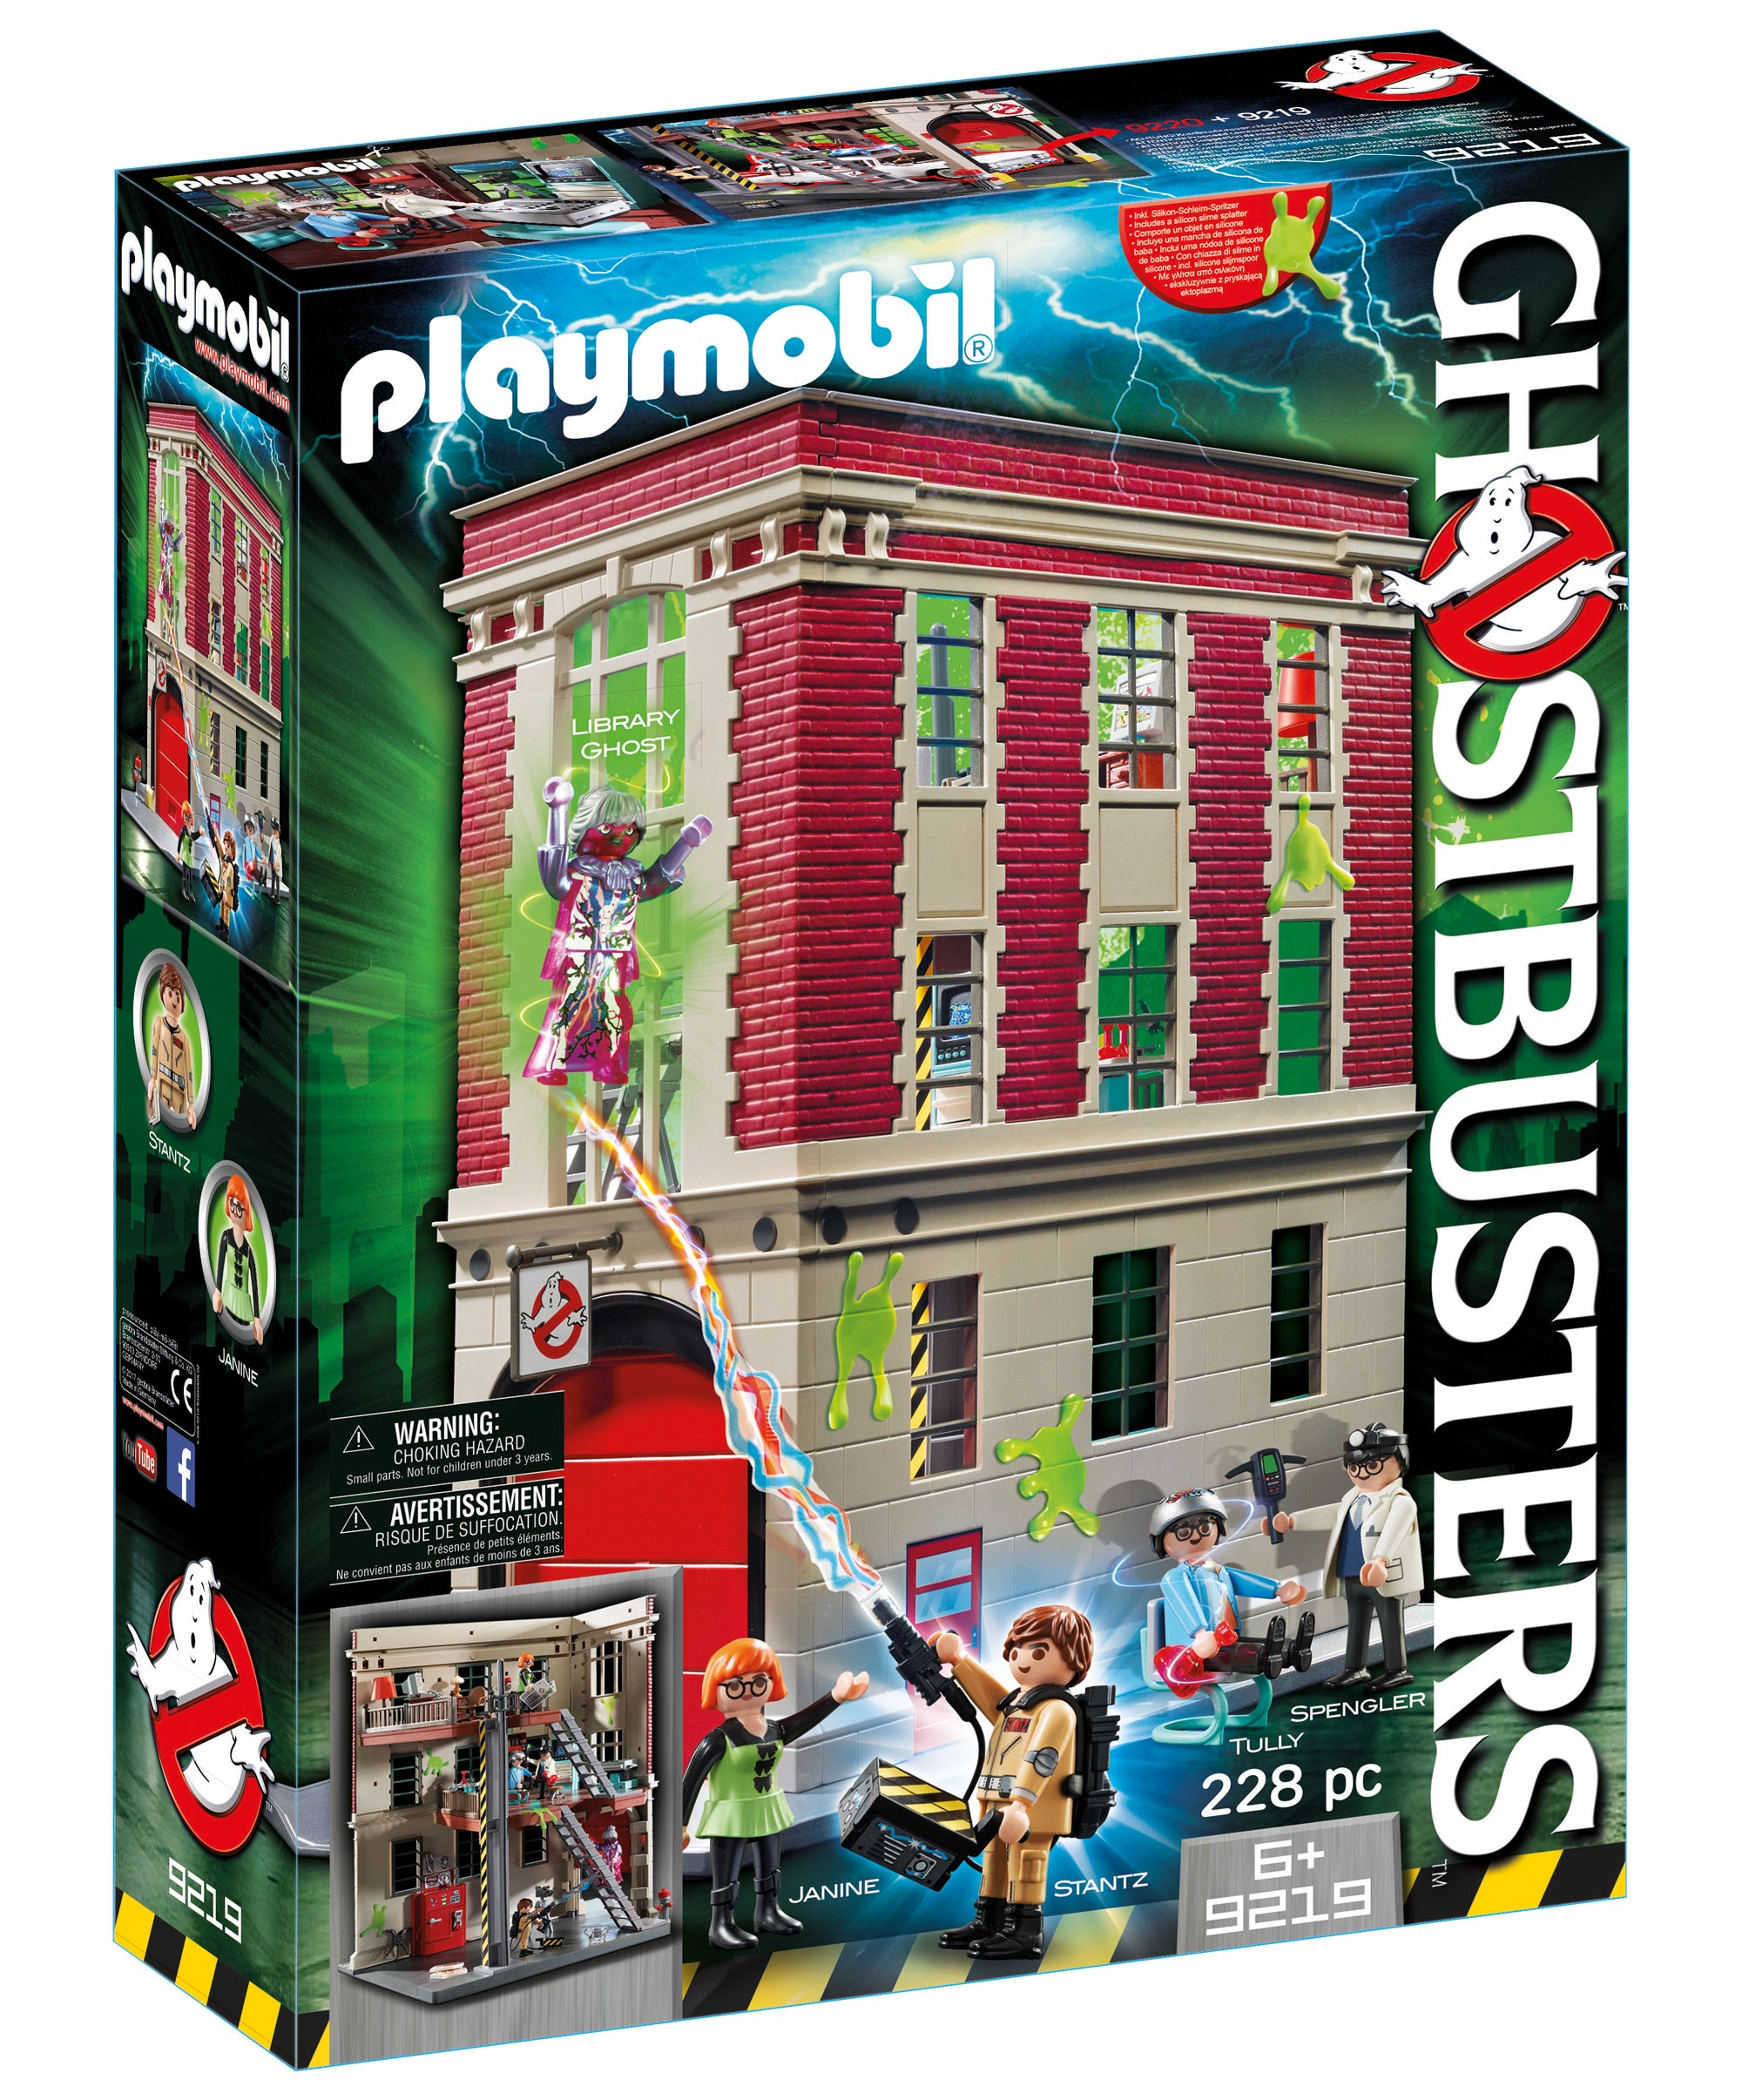 playmobil 39 s new ghostbusters toys are so great you 39 ll wish you had a childhood do over gizmodo. Black Bedroom Furniture Sets. Home Design Ideas